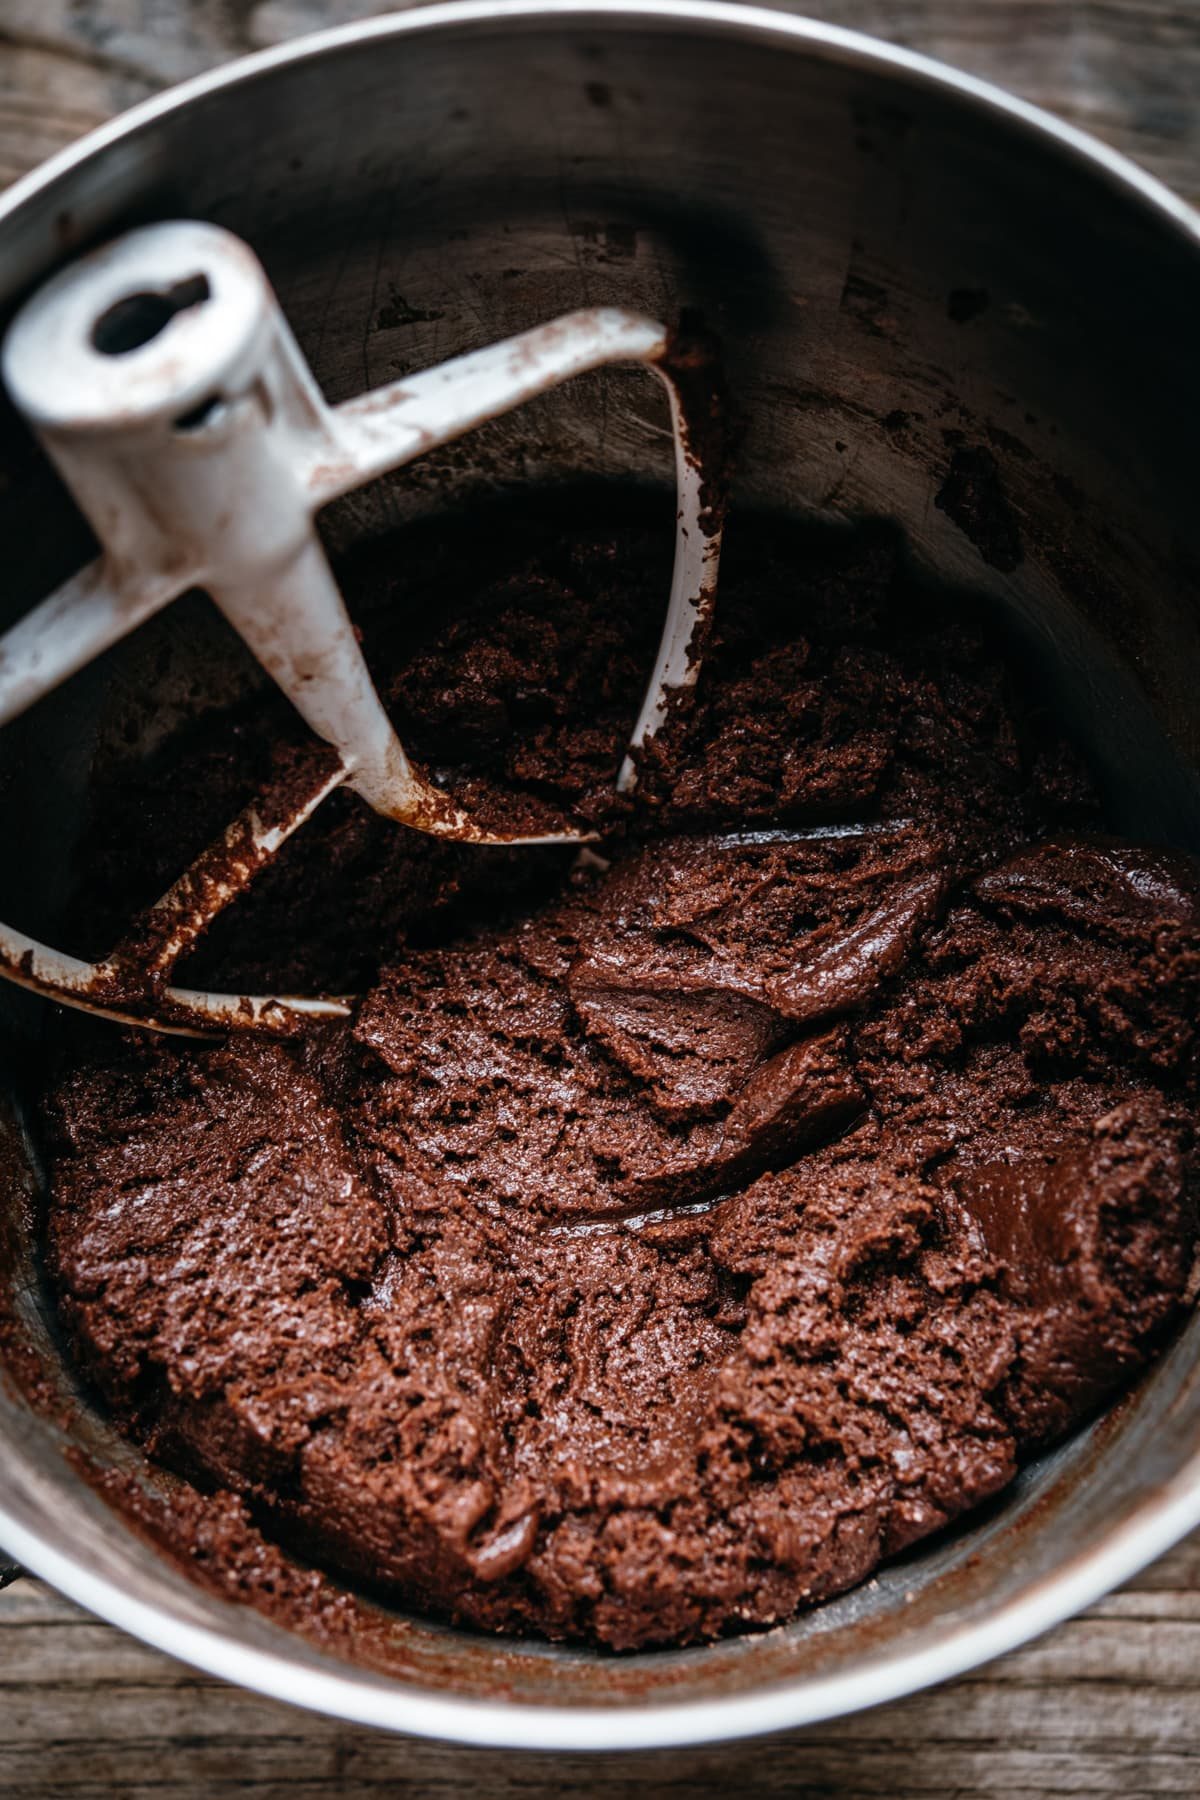 close up view of chocolate cookie dough in mixing bowl.